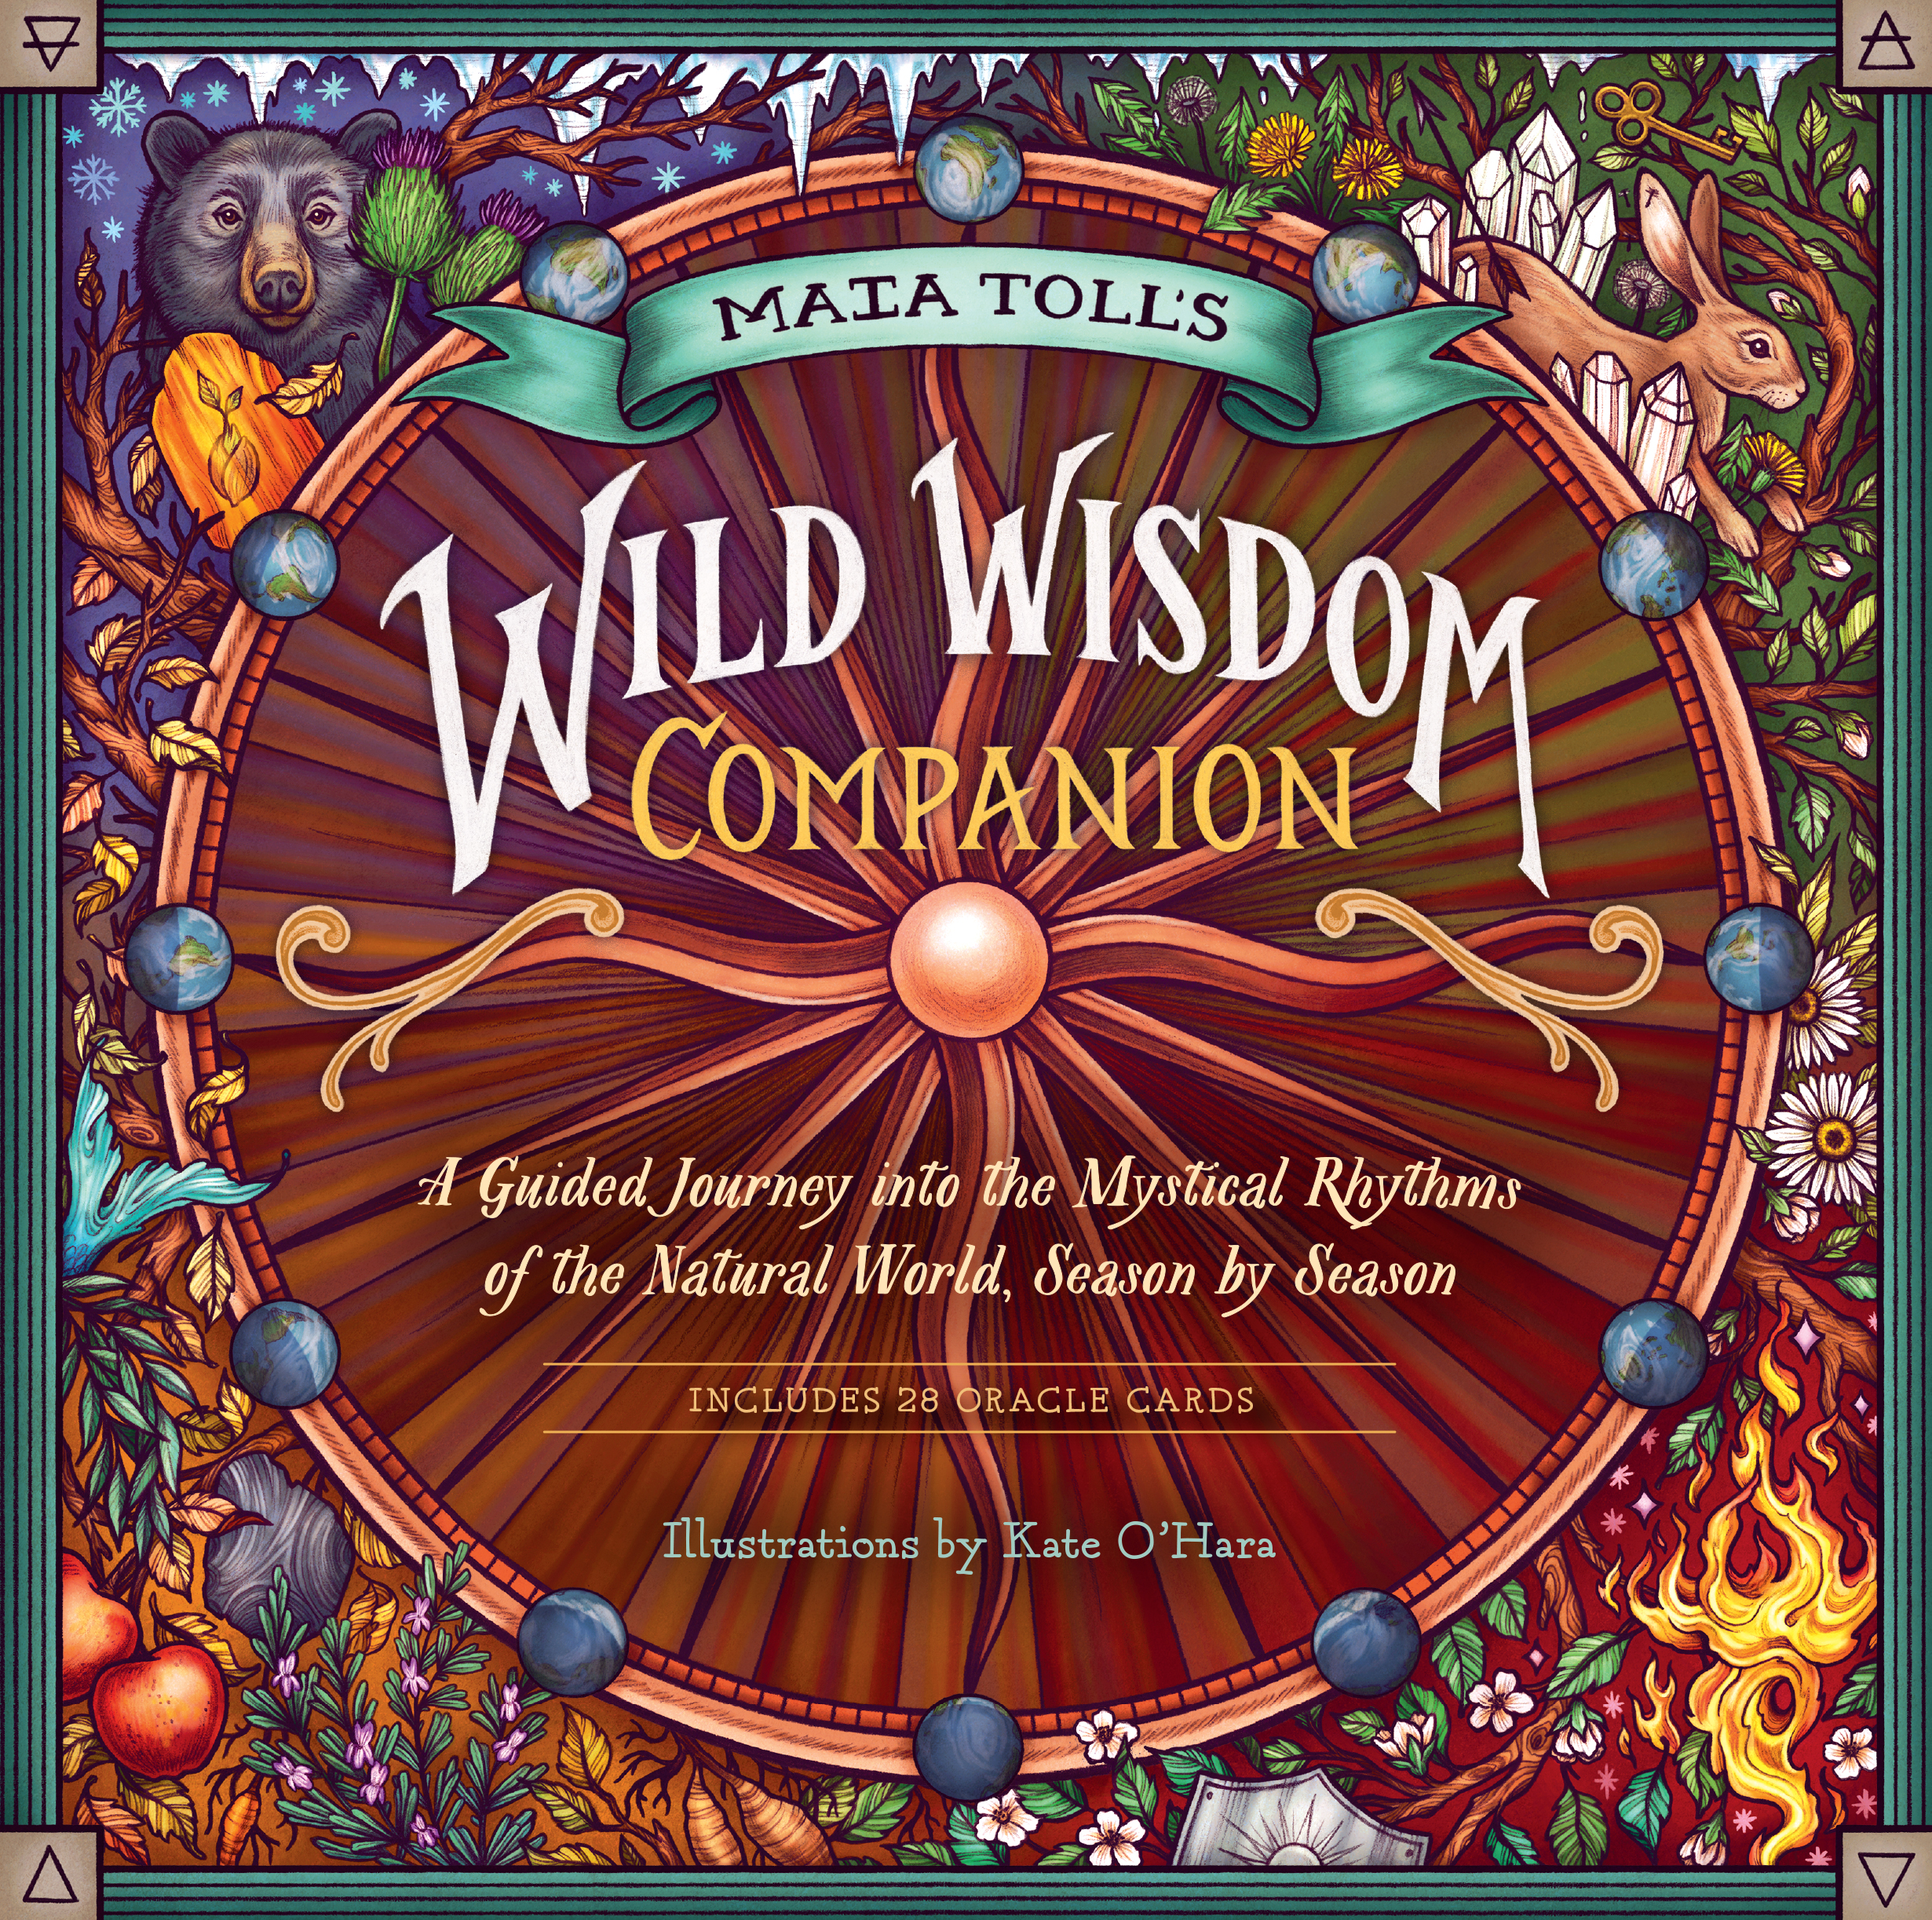 Maia Toll's Wild Wisdom Companion A Guided Journey into the Mystical Rhythms of the Natural World, Season by Season - Maia Toll